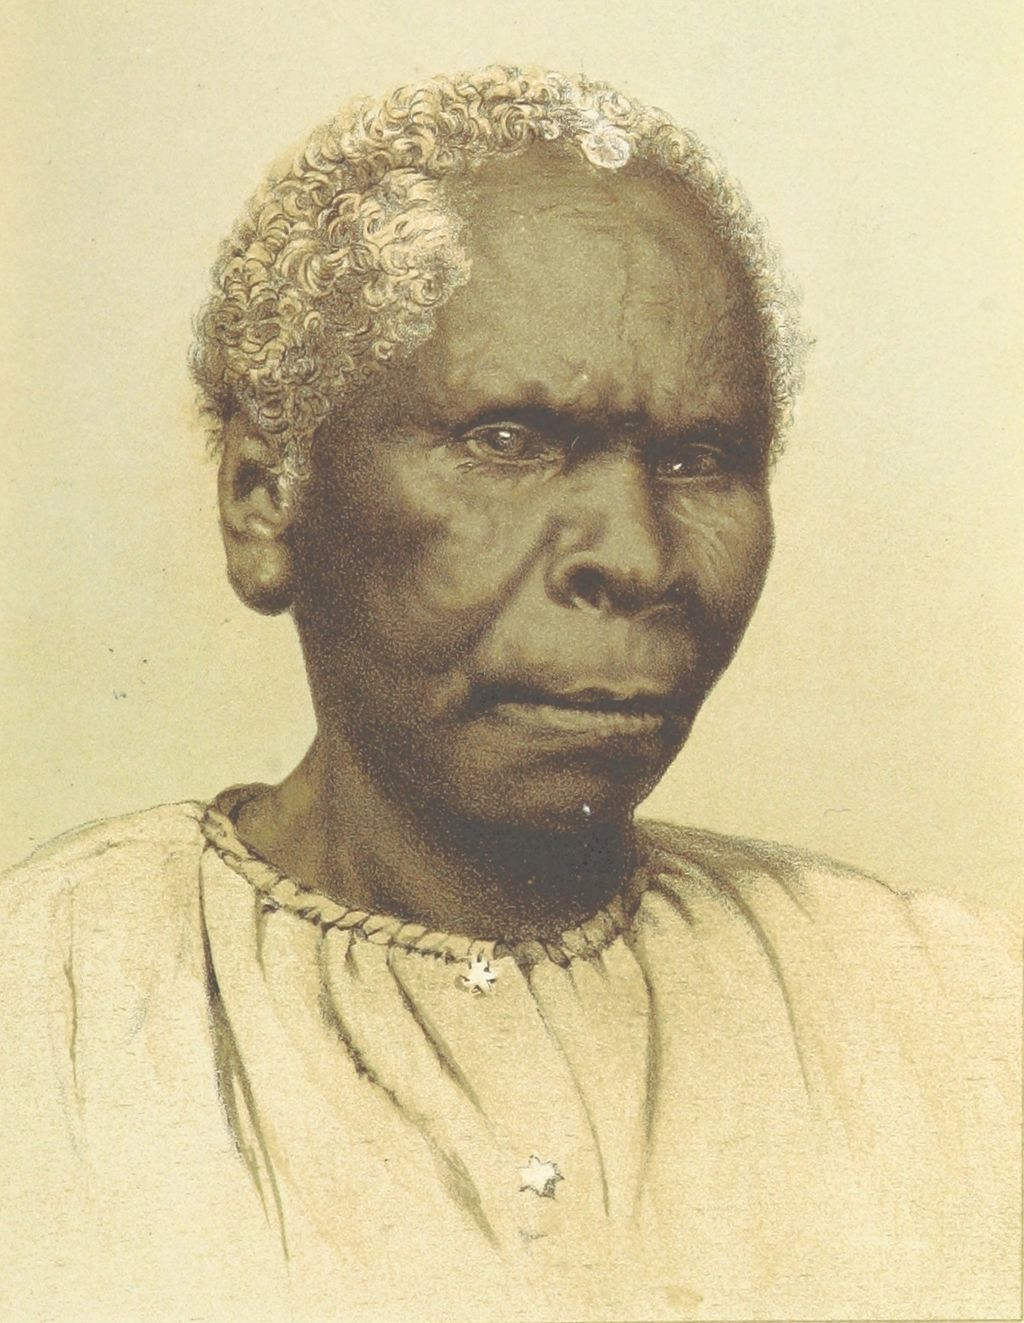 B(1871) p187 TASMANIA, THE LAST OF THE ABORIGINALS (LADY)